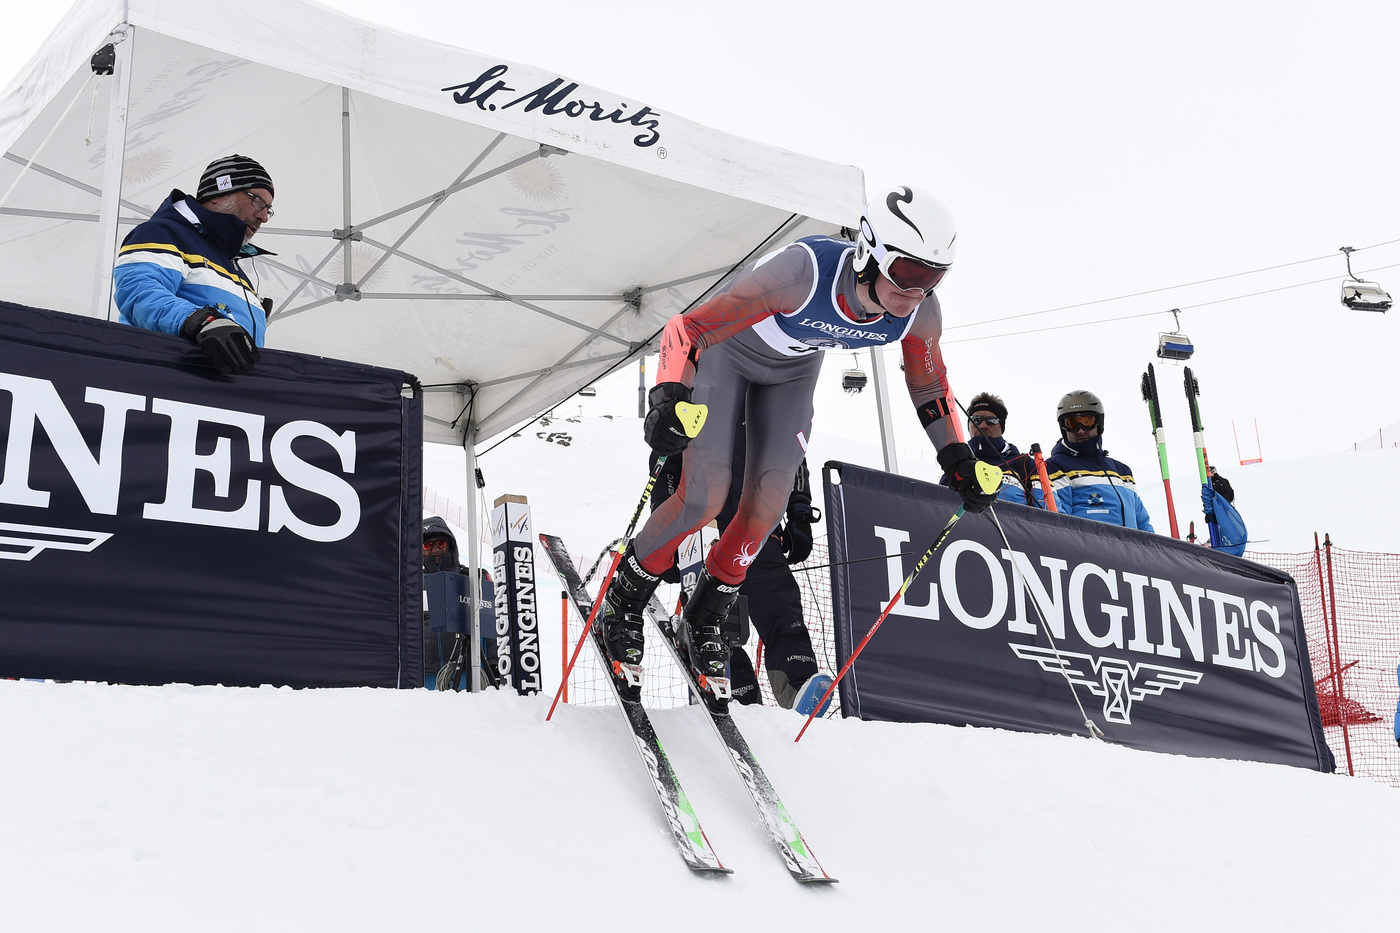 Longines Alpine Skiing Event: A new venue for the third edition of the Longines Future Ski Champions 3